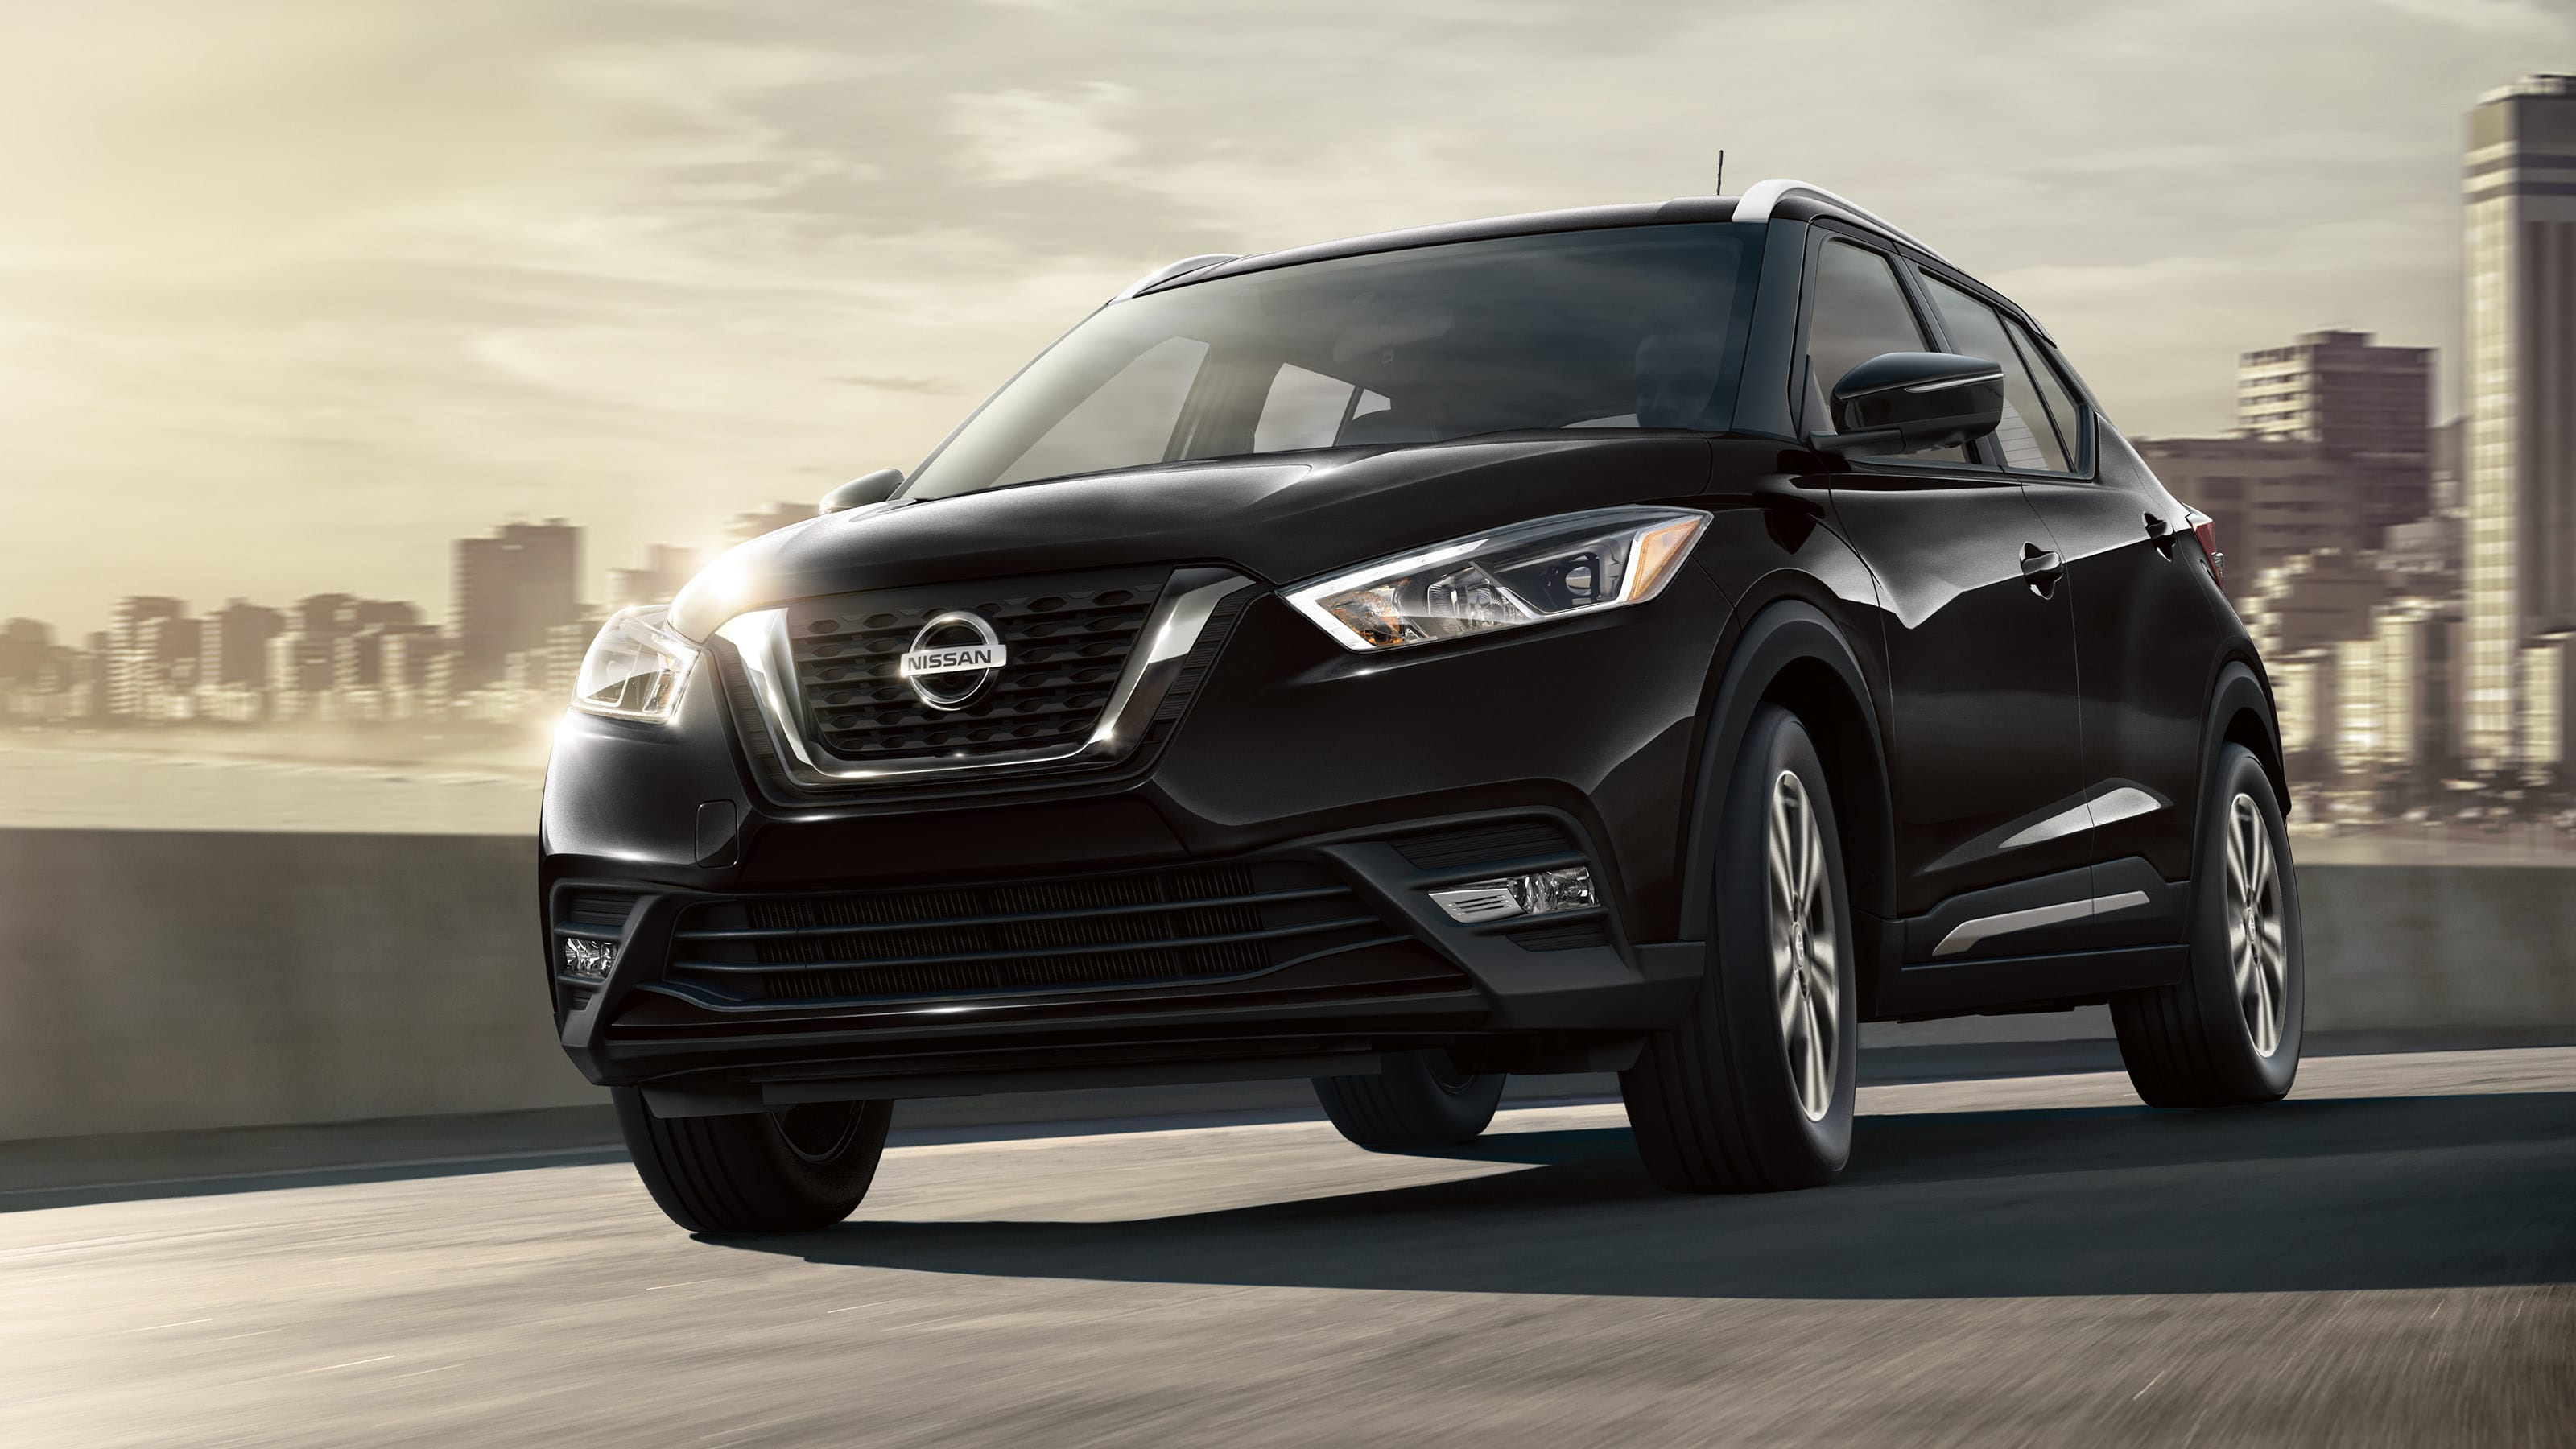 2019 Nissan Kicks for Sale near Calumet City, IL